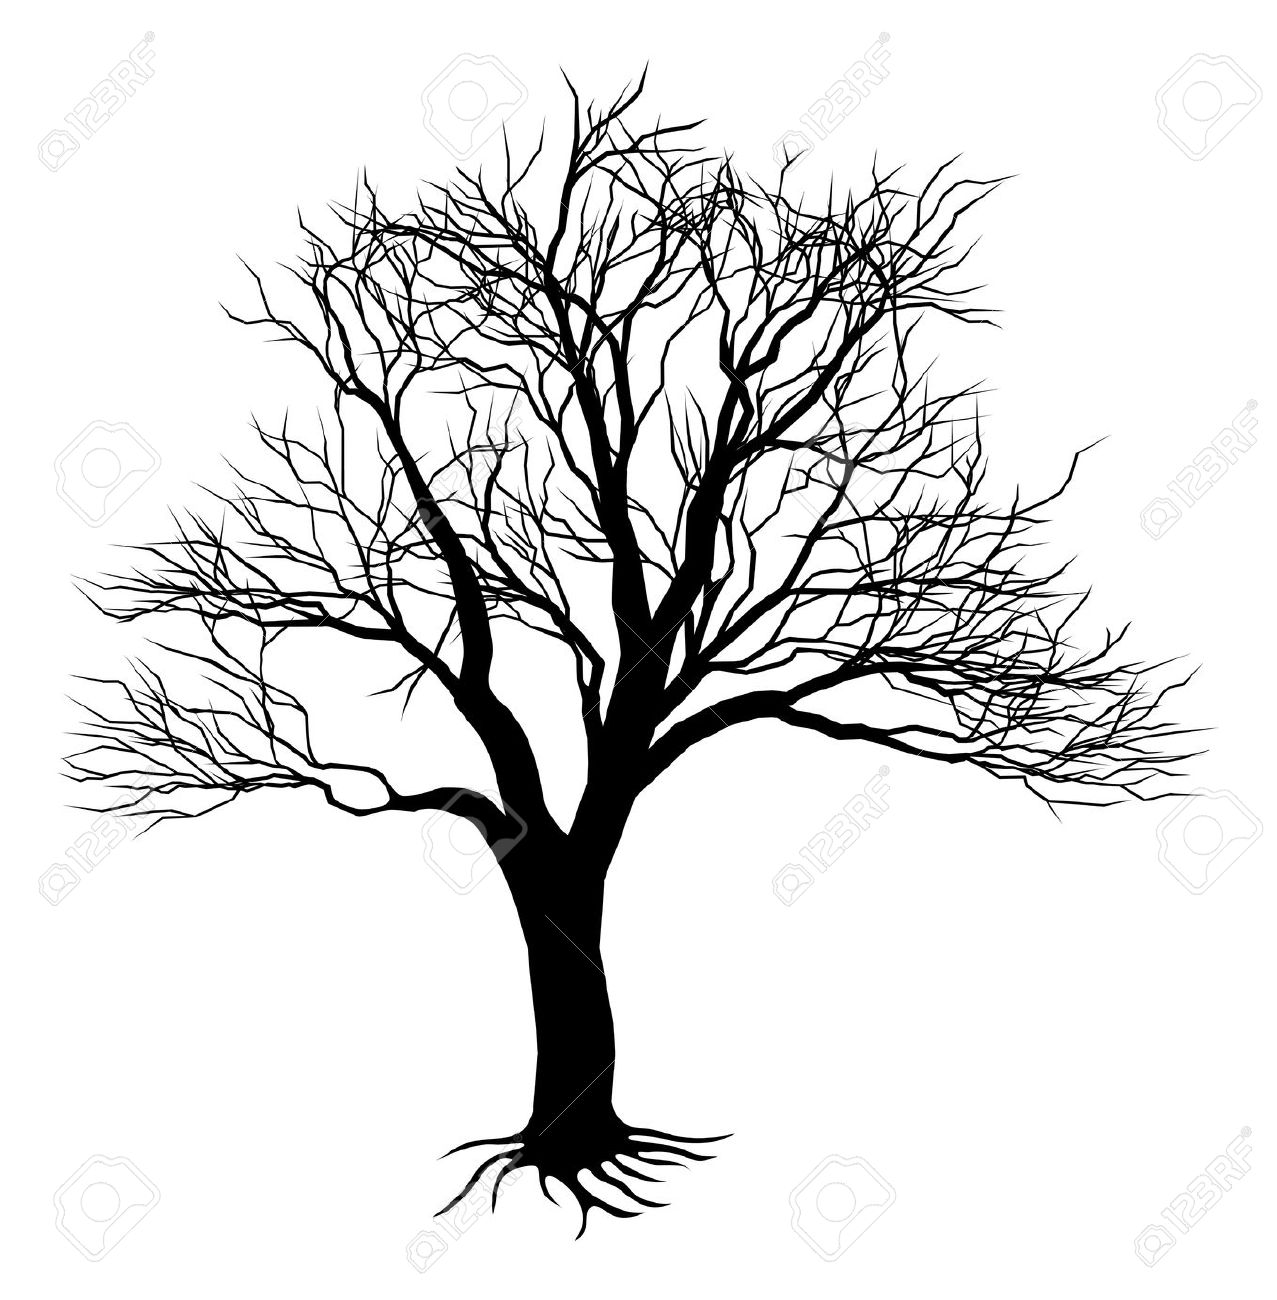 Scary Bare Black Tree Silhouette Stock Photos Images. Royalty Free.